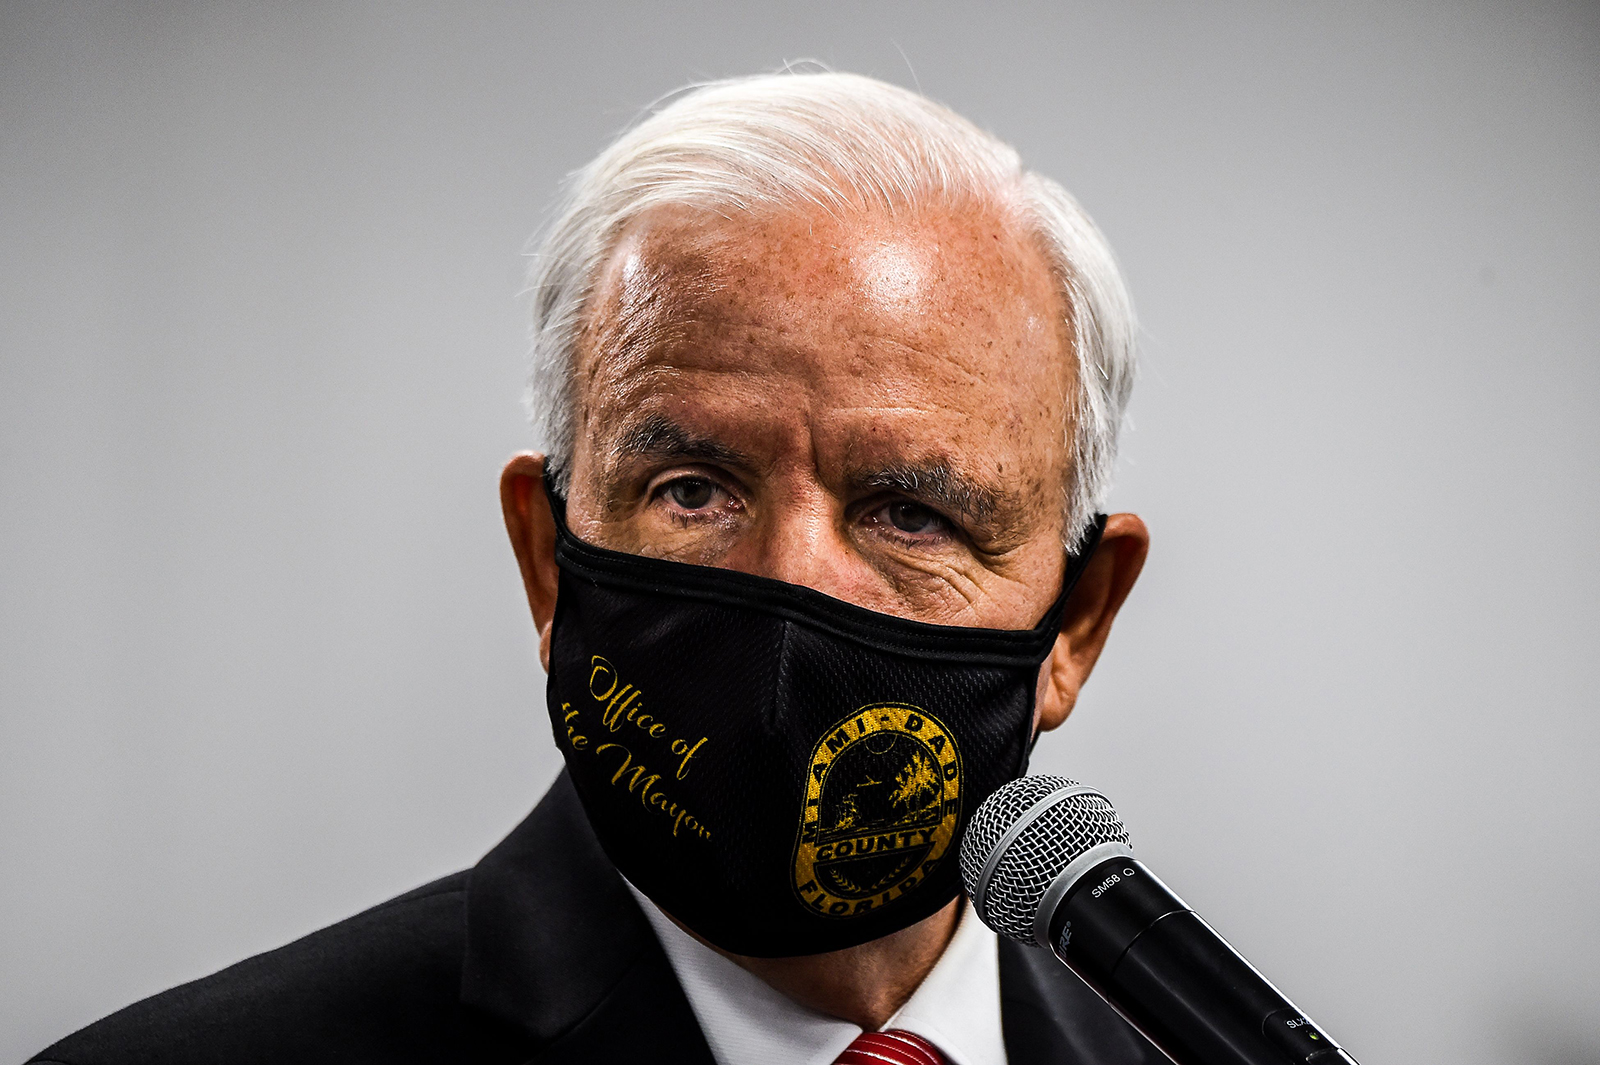 Miami-Dade County Mayor Carlos Gimenez wears a facemask during a press conference to address the rise of coronavirus cases in the state, at Jackson Memorial Hospital in Miami, on July 13.